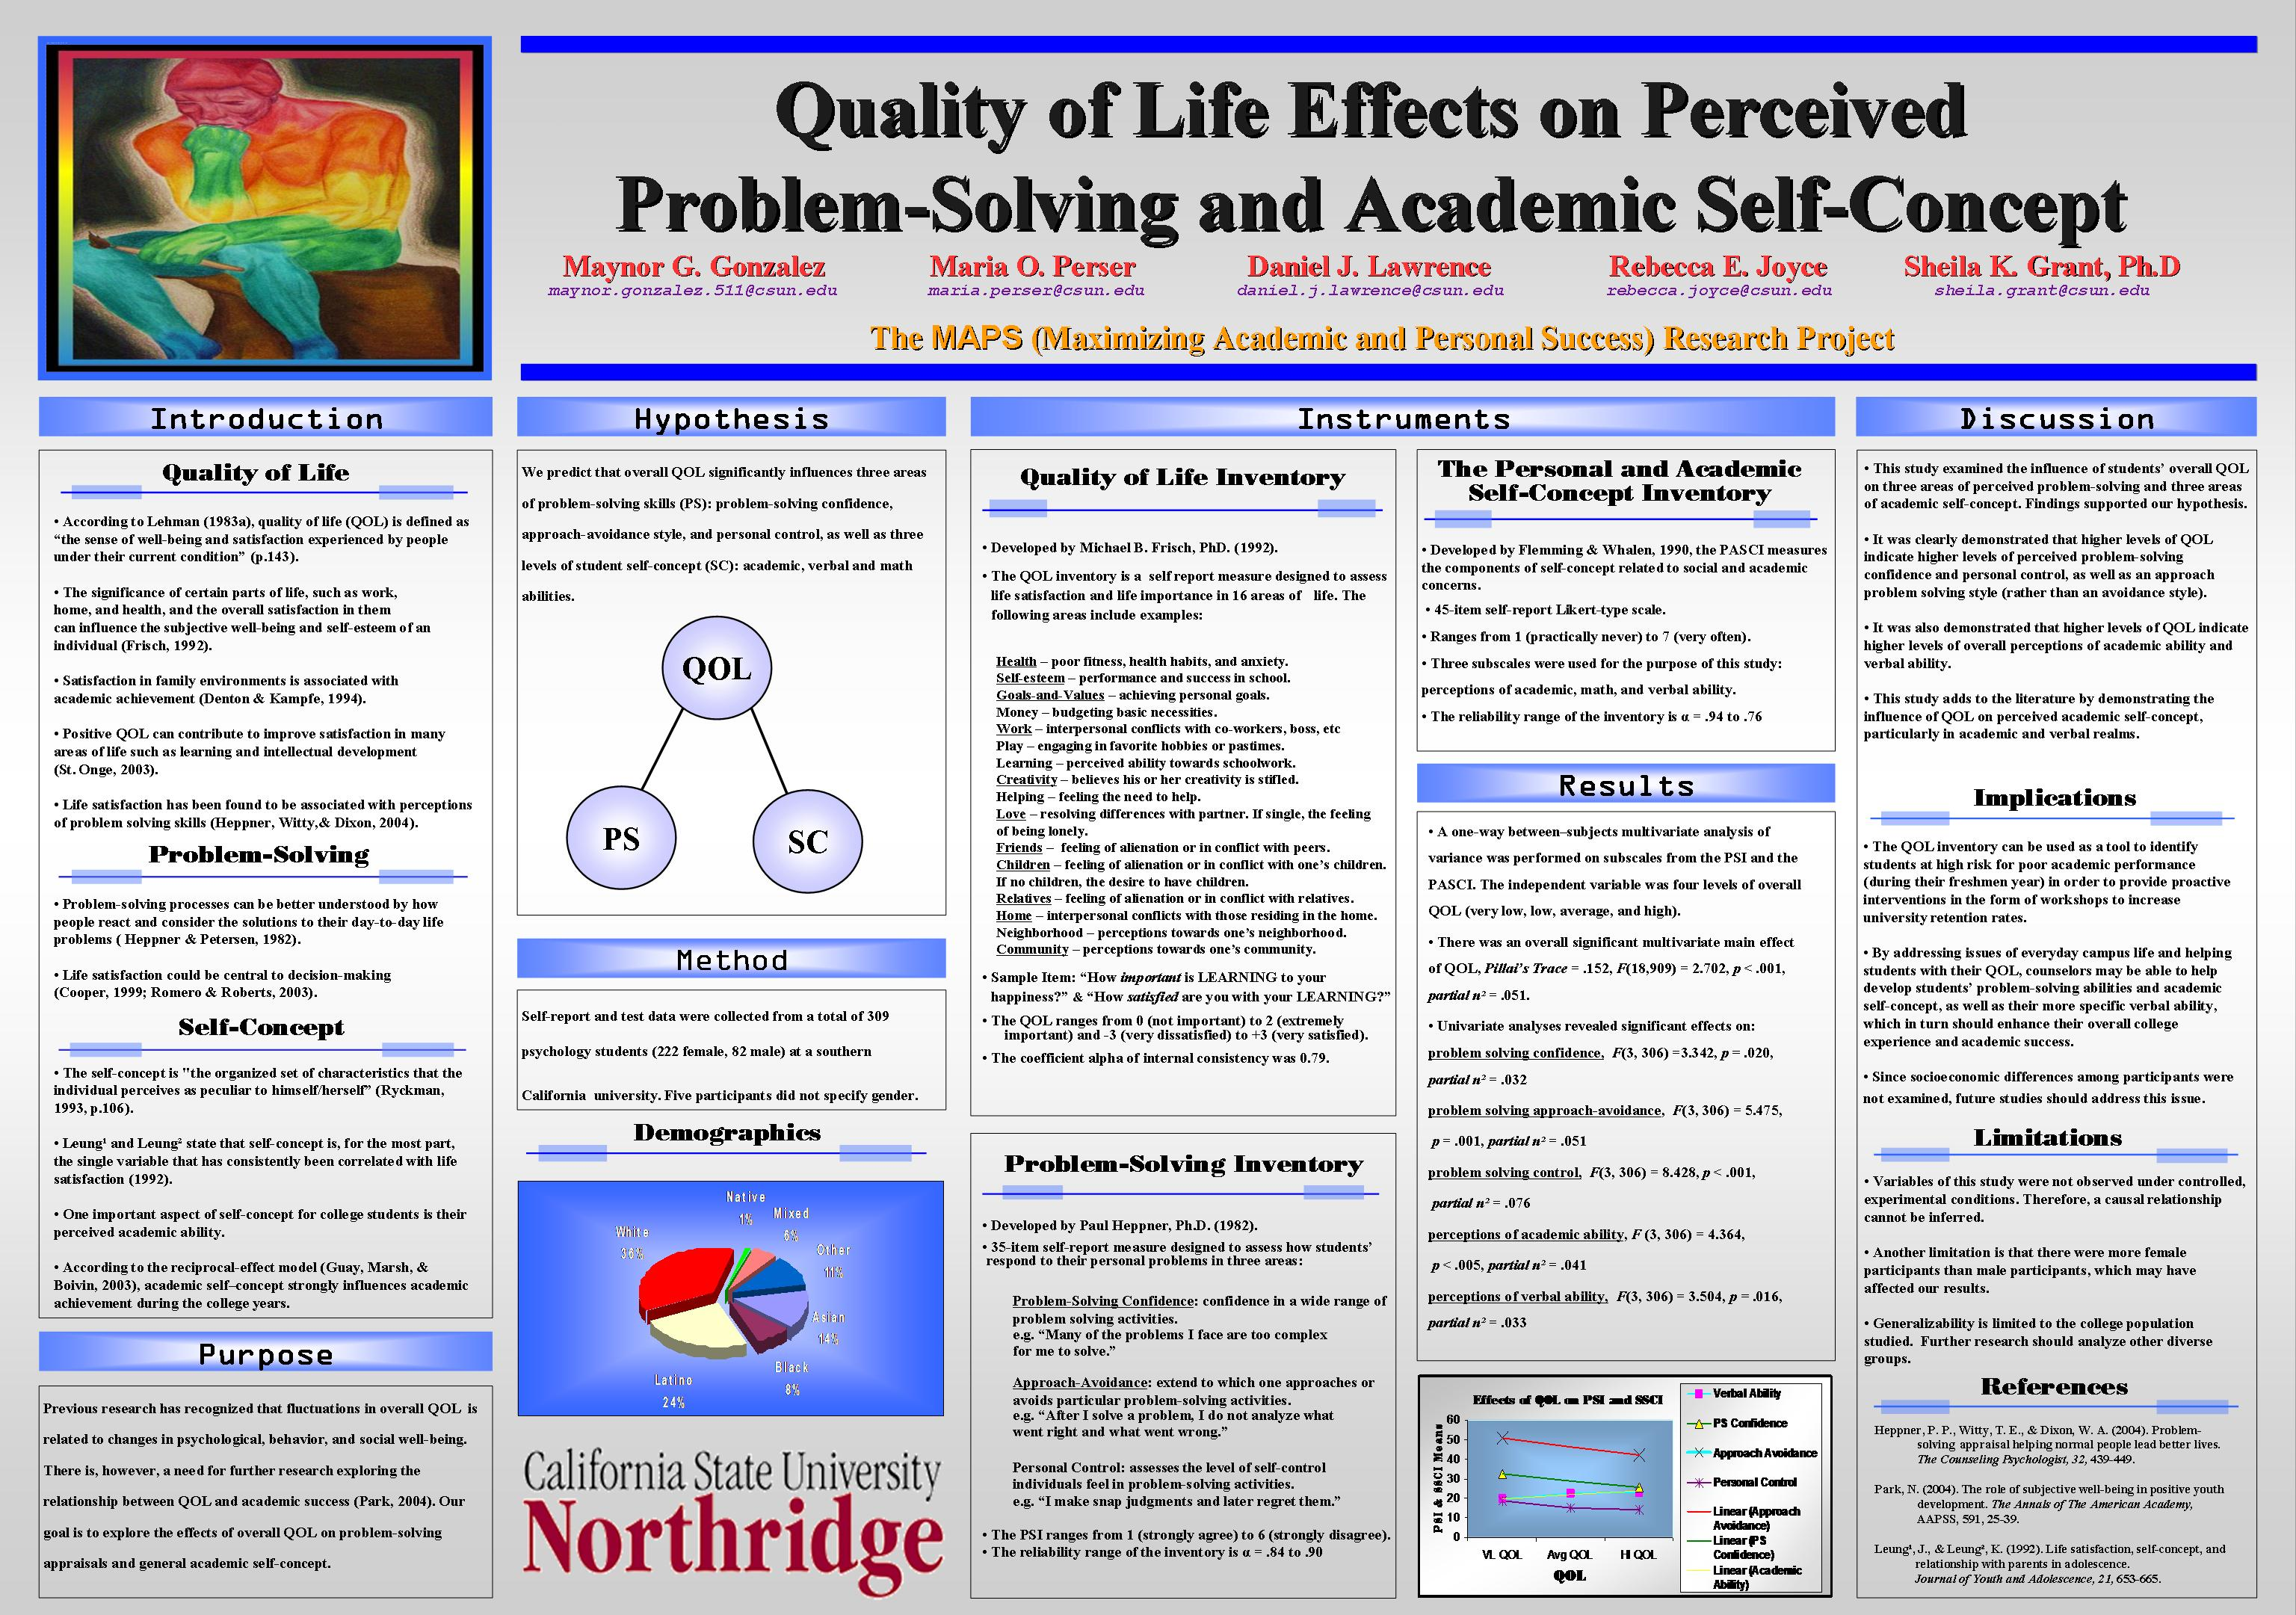 effects of perception Mood effects on person-perception judgments joseph p forgas university of new south wales, kensington, australia gordon h bower stanford university how does mood affect the way we learn about, judge, and remember characteristics of other people.